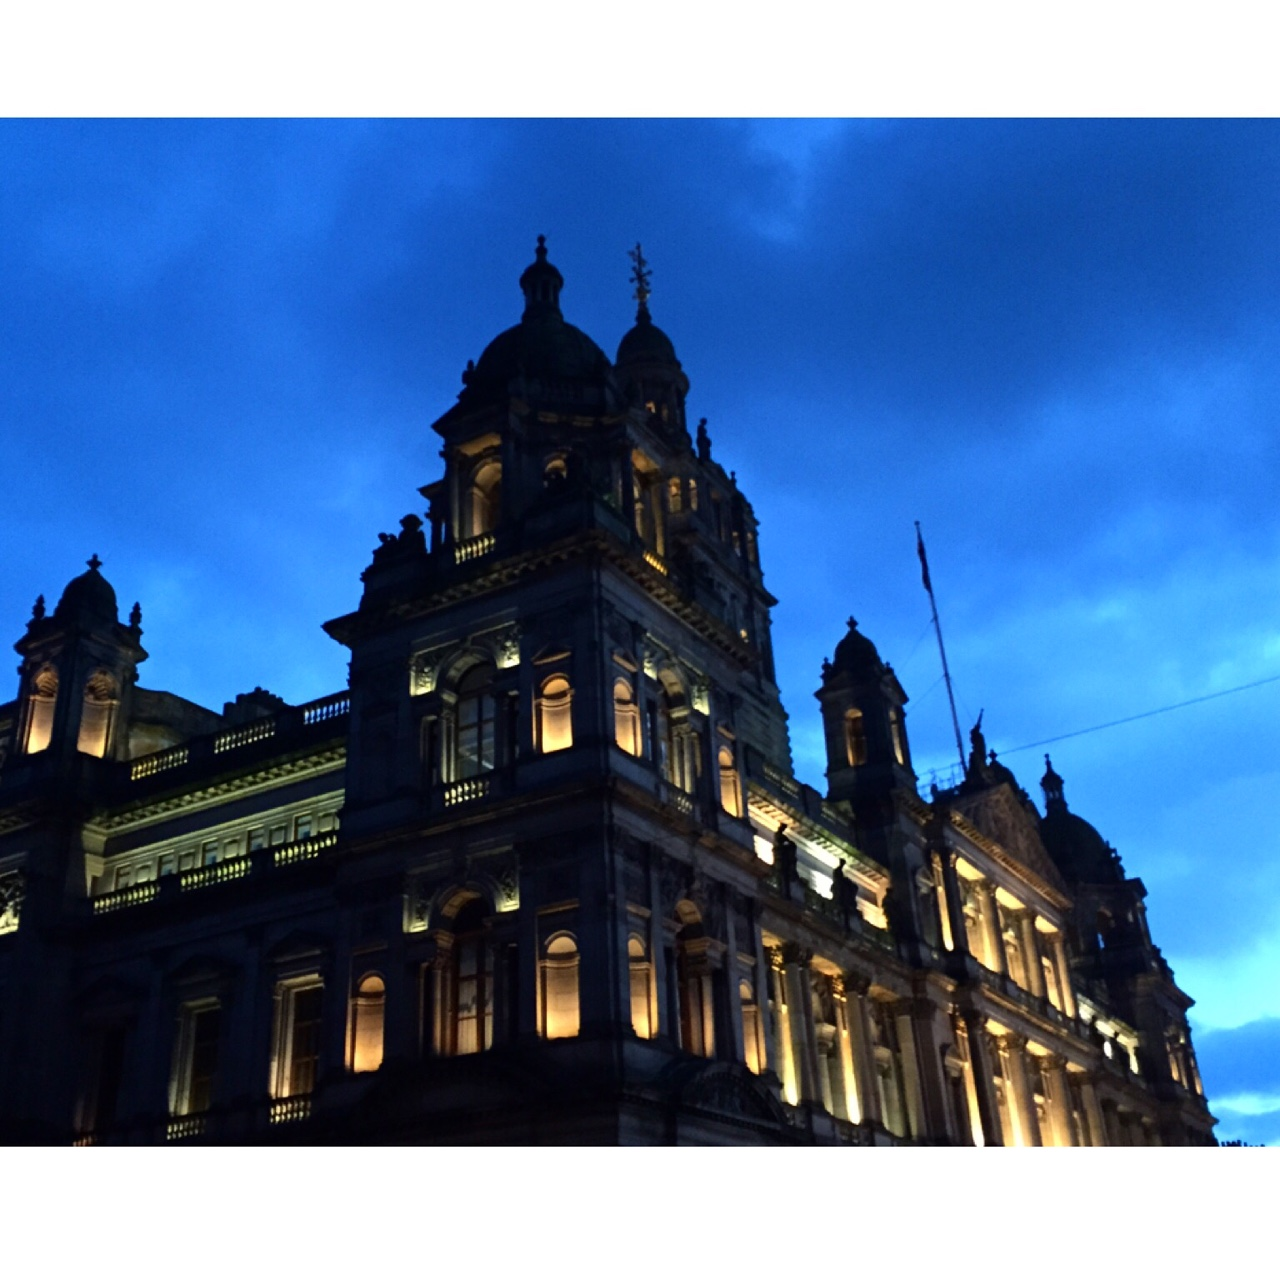 Look up Beautiful architecture in Glasgow- Glasgow City Chambers in George Square. //SHE